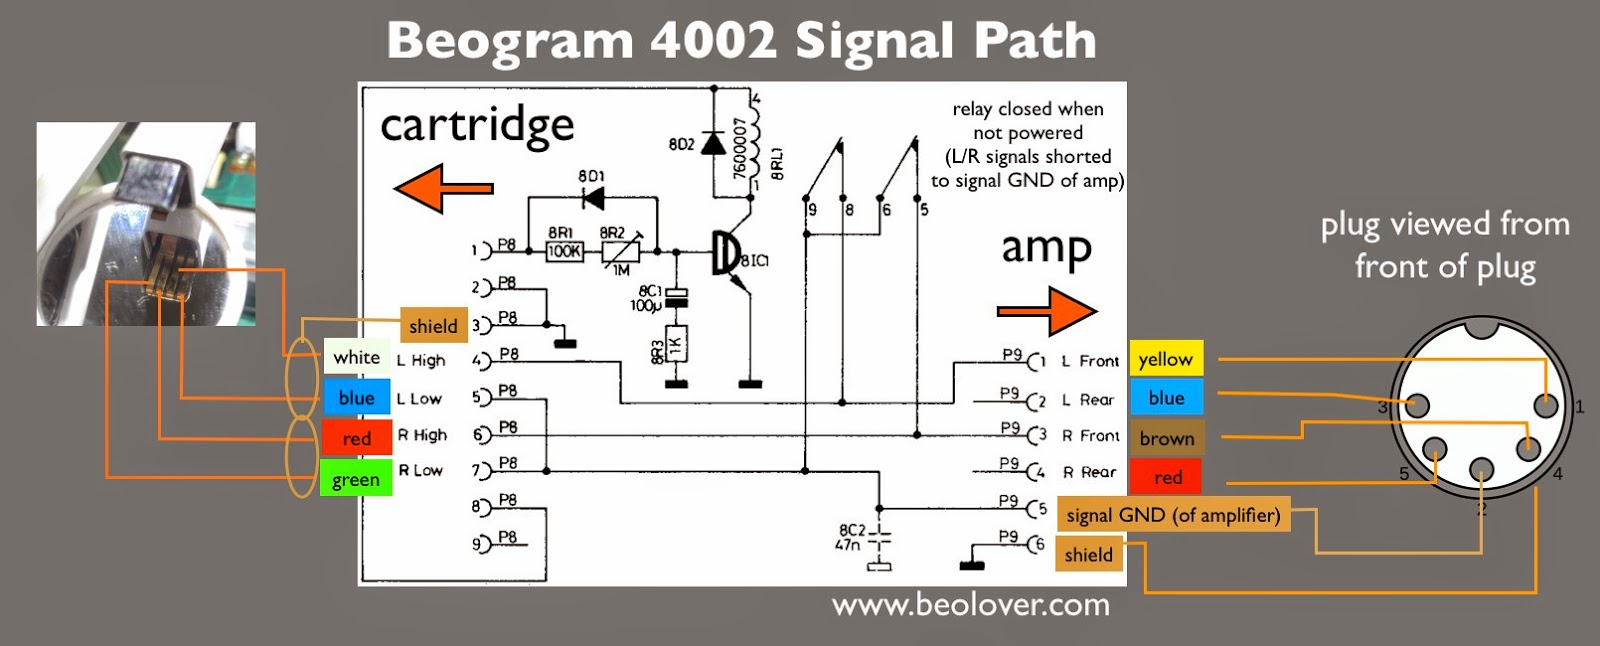 Wiring Diagram Amplifier Rover 75 And Body Electrical System Beolover: Beogram 4002: Signal Path Between Din5 Plug Cartridge, Replacement